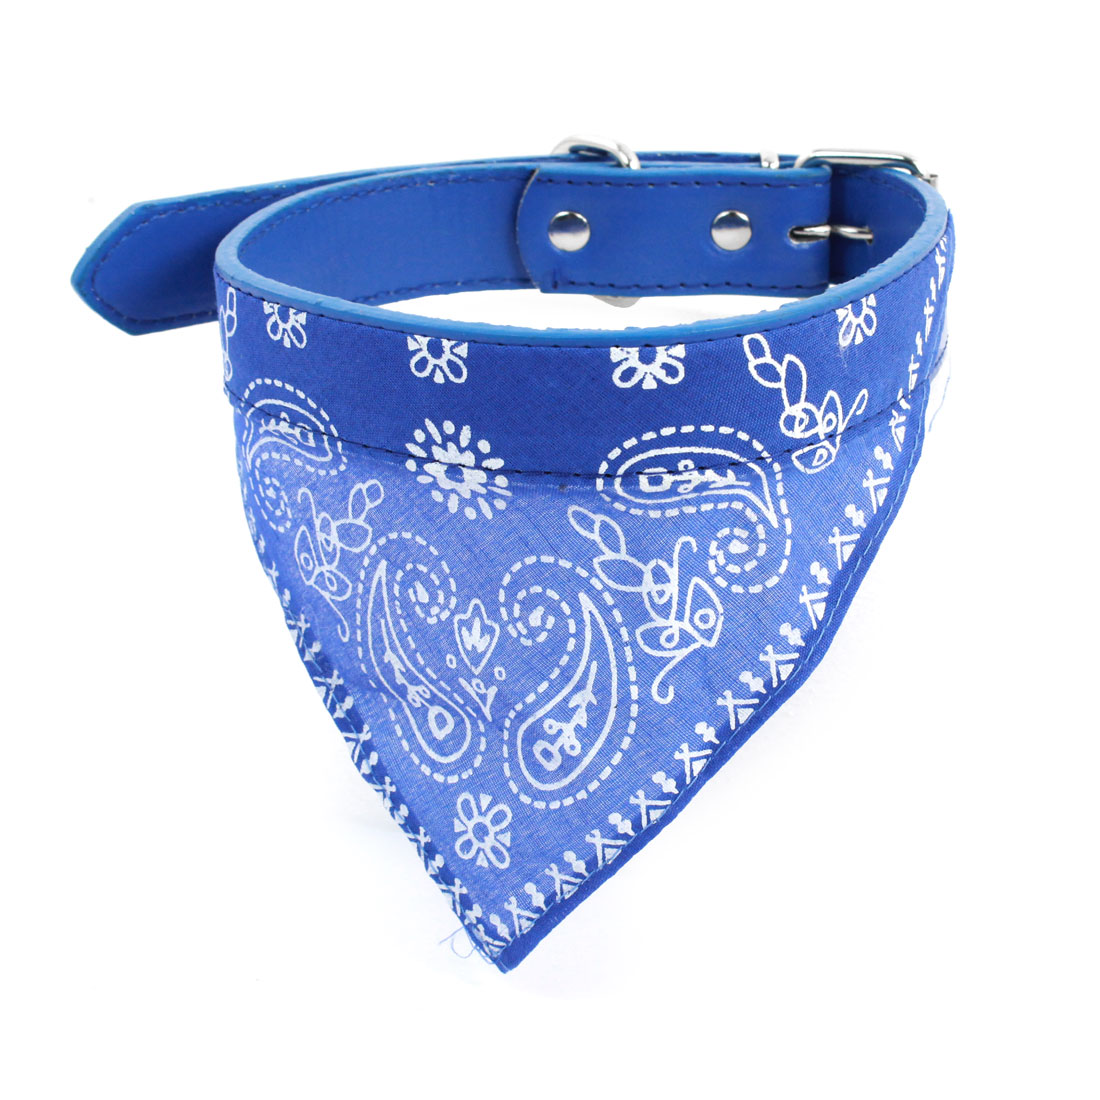 Blue Paisley Printed Adjustable Strap Pet Dog Yorkie Scarf Bandana Neck Collar